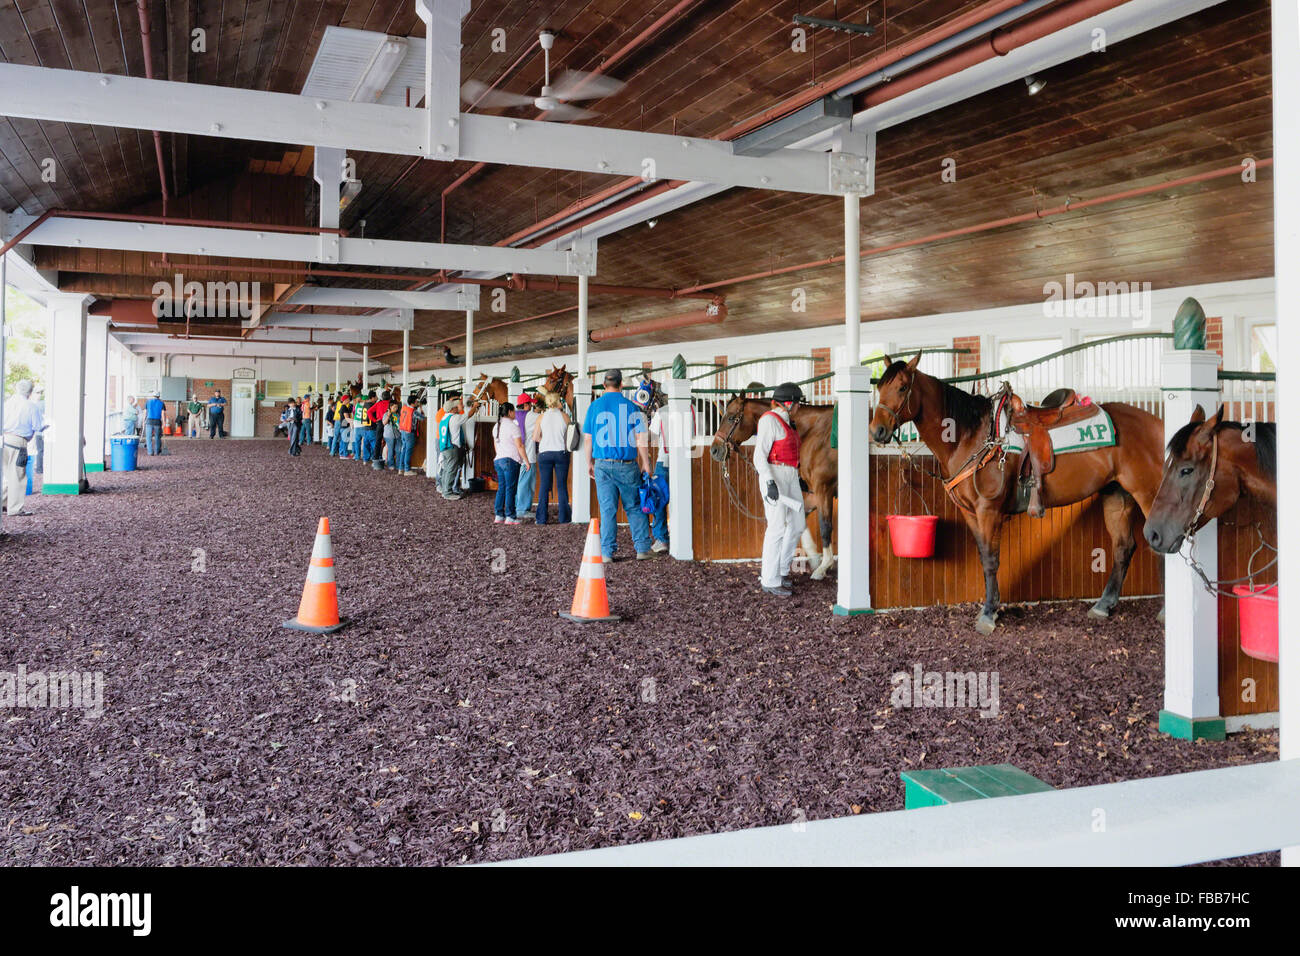 Race Horses in a Stable Being Prepared for a Race, Monmouth Park Race Track, Oceanport, New Jersey - Stock Image